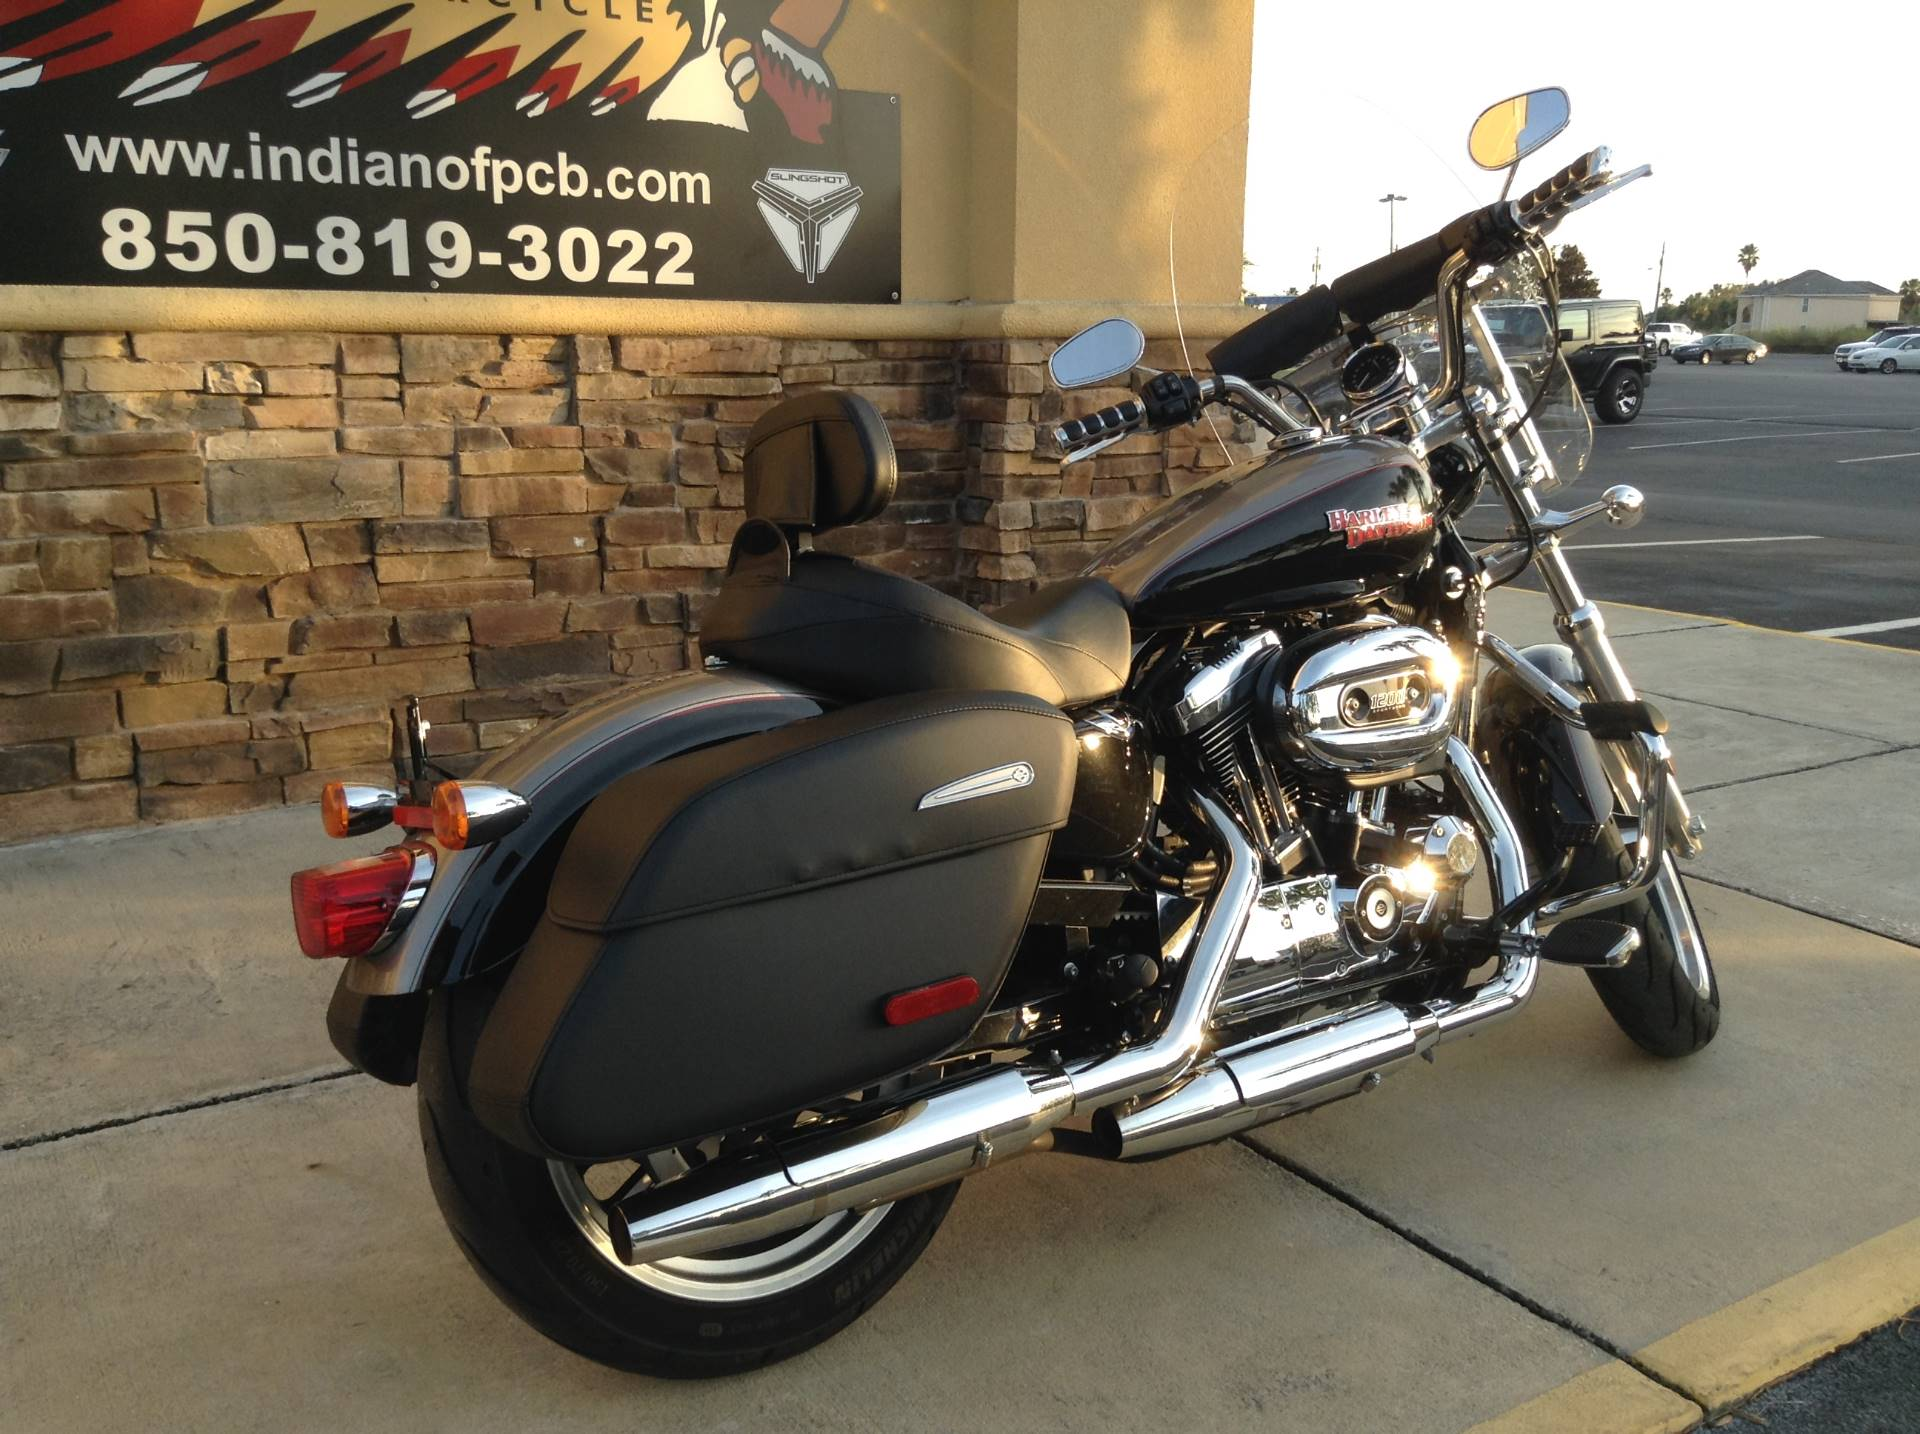 2016 Harley-Davidson XL 1200 T / SPORSTER TOURING in Panama City Beach, Florida